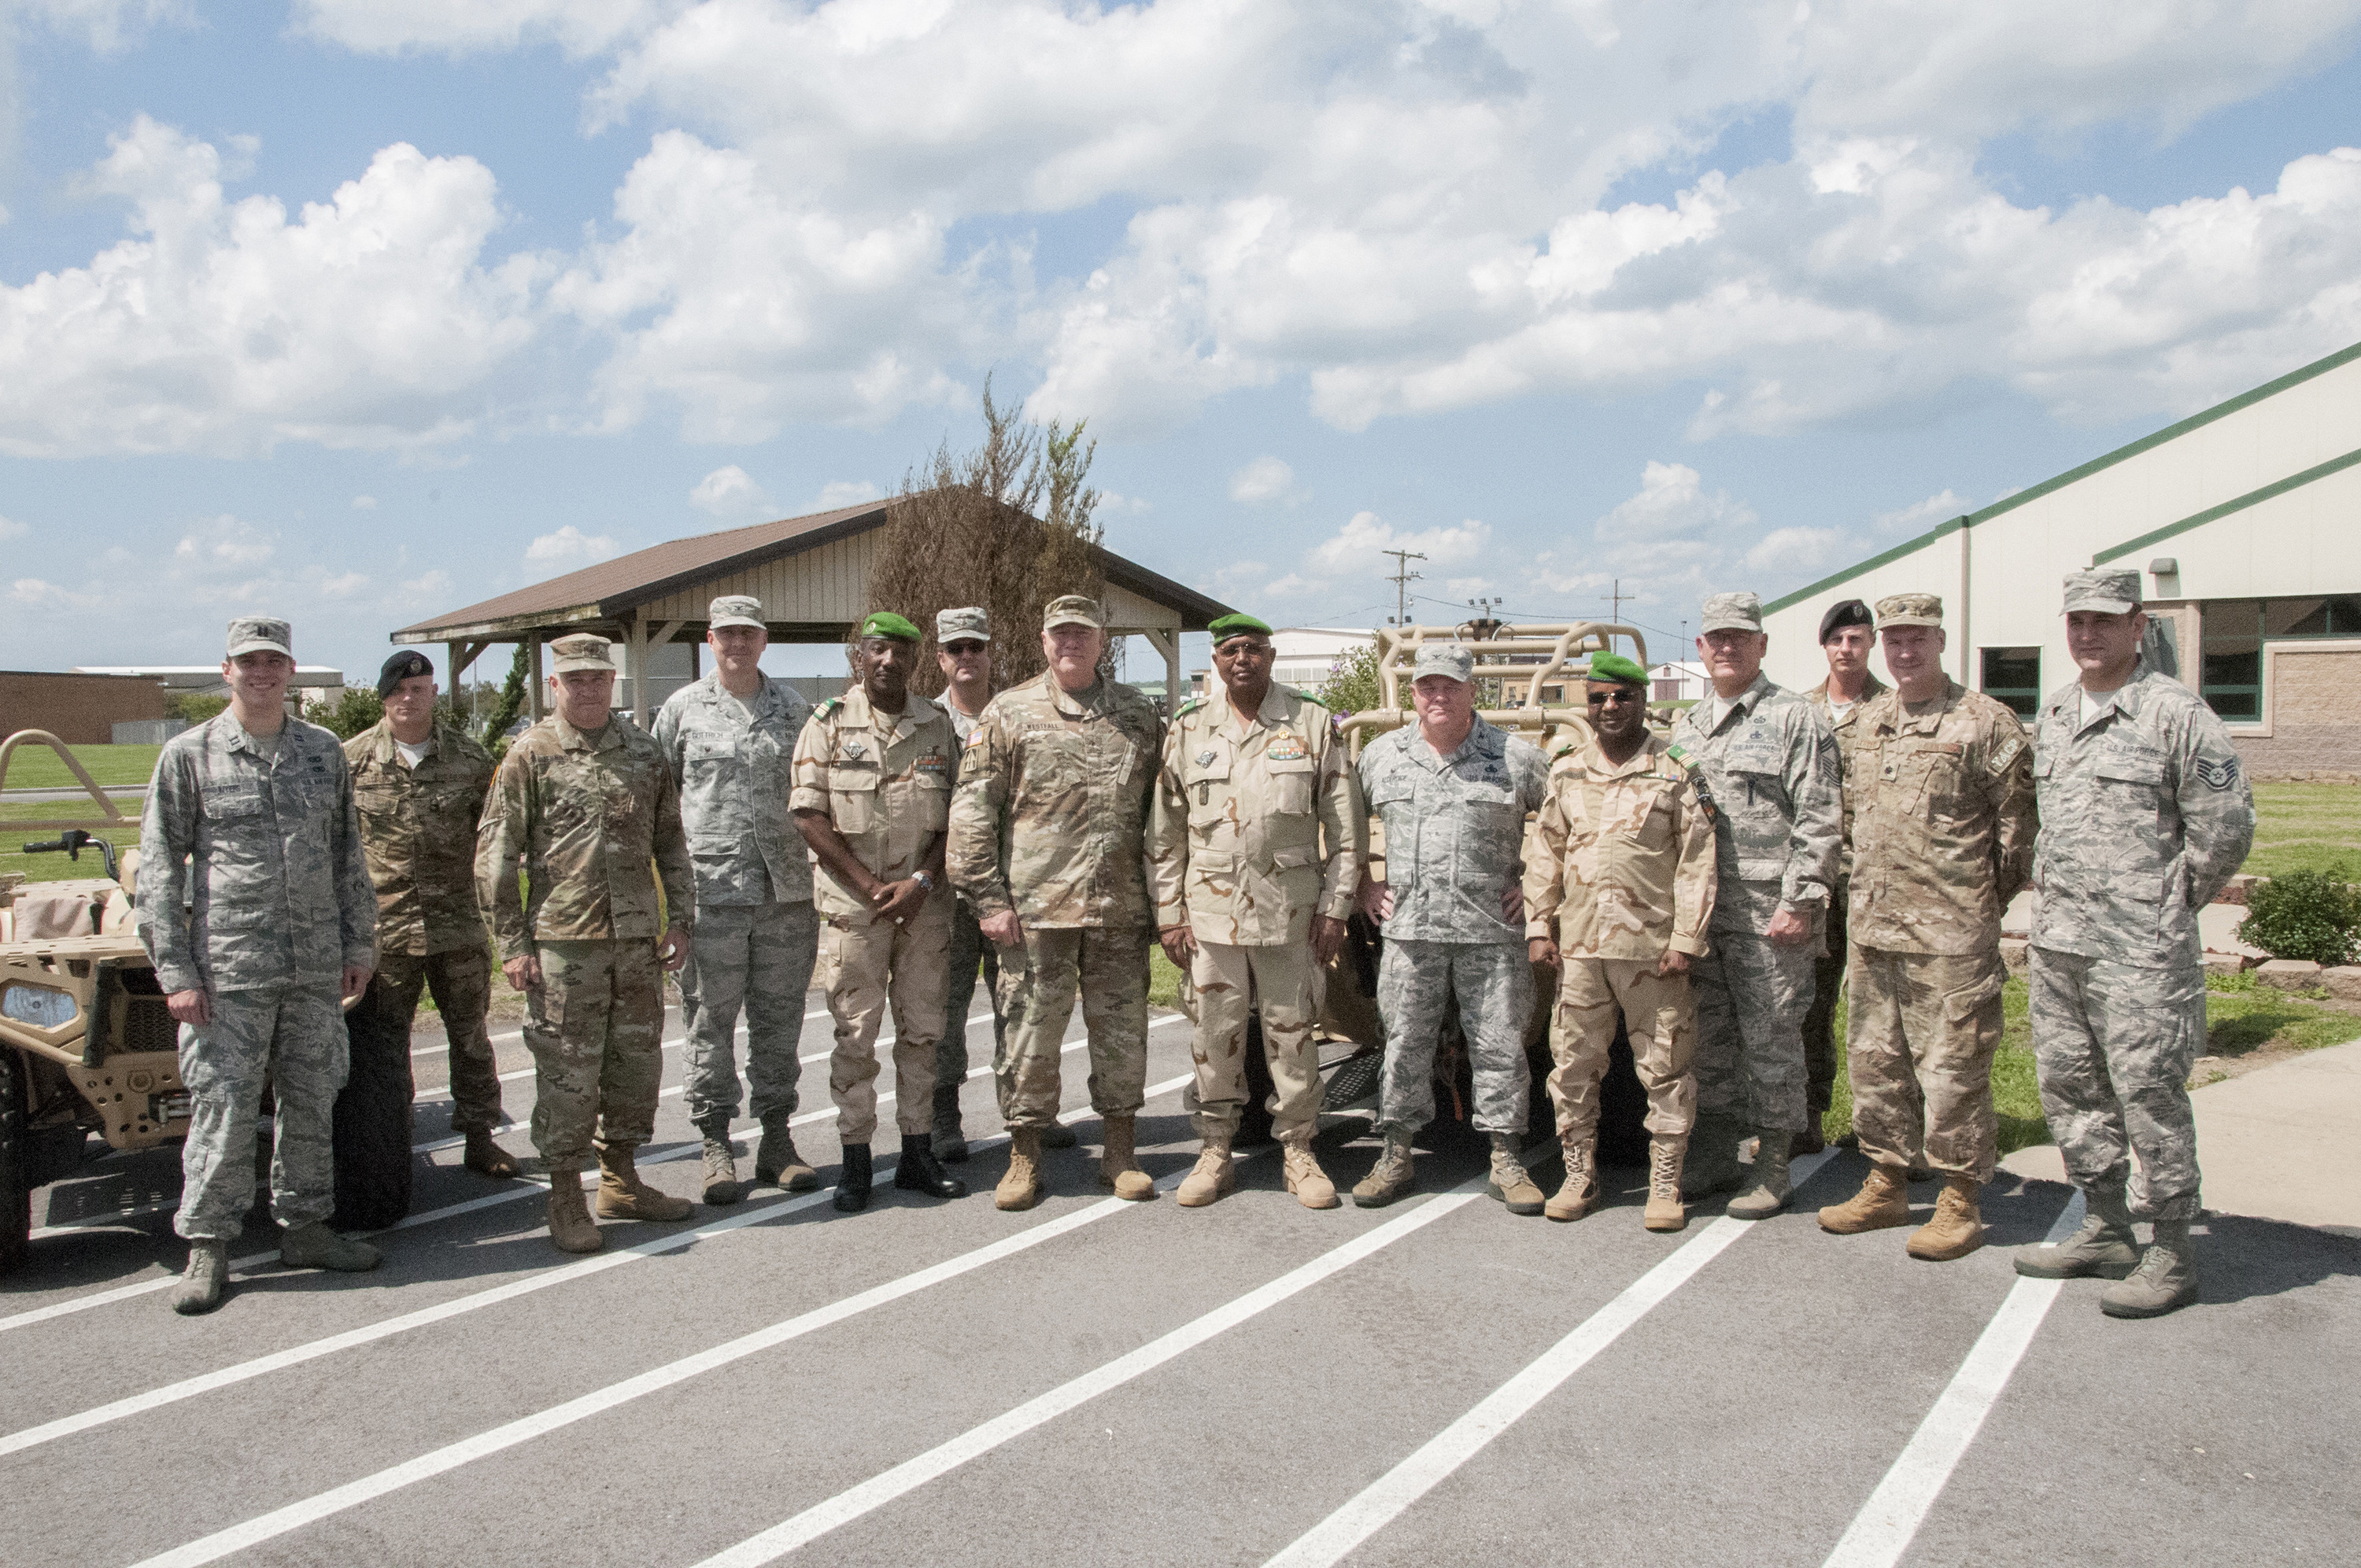 Service members from the Niger Armed Forces and Indiana National Guard pose for a group photo at the conclusion of a State Partnership Program meeting at Hulman Field Air National Guard Base, Terre Haute, Indiana, Aug. 28, 2018. The National Guard State Partnership Program is an innovative Department of Defense joint security cooperation program, administered by the National Guard Bureau, guided by State Department foreign policy goals, and executed by the State Adjutants General in support of Combatant Commander and U.S. Chief of Mission security cooperation objectives and Department of Defense policy goals. (U.S. Air National Guard photo by Staff Sgt. Lonnie Wiram)